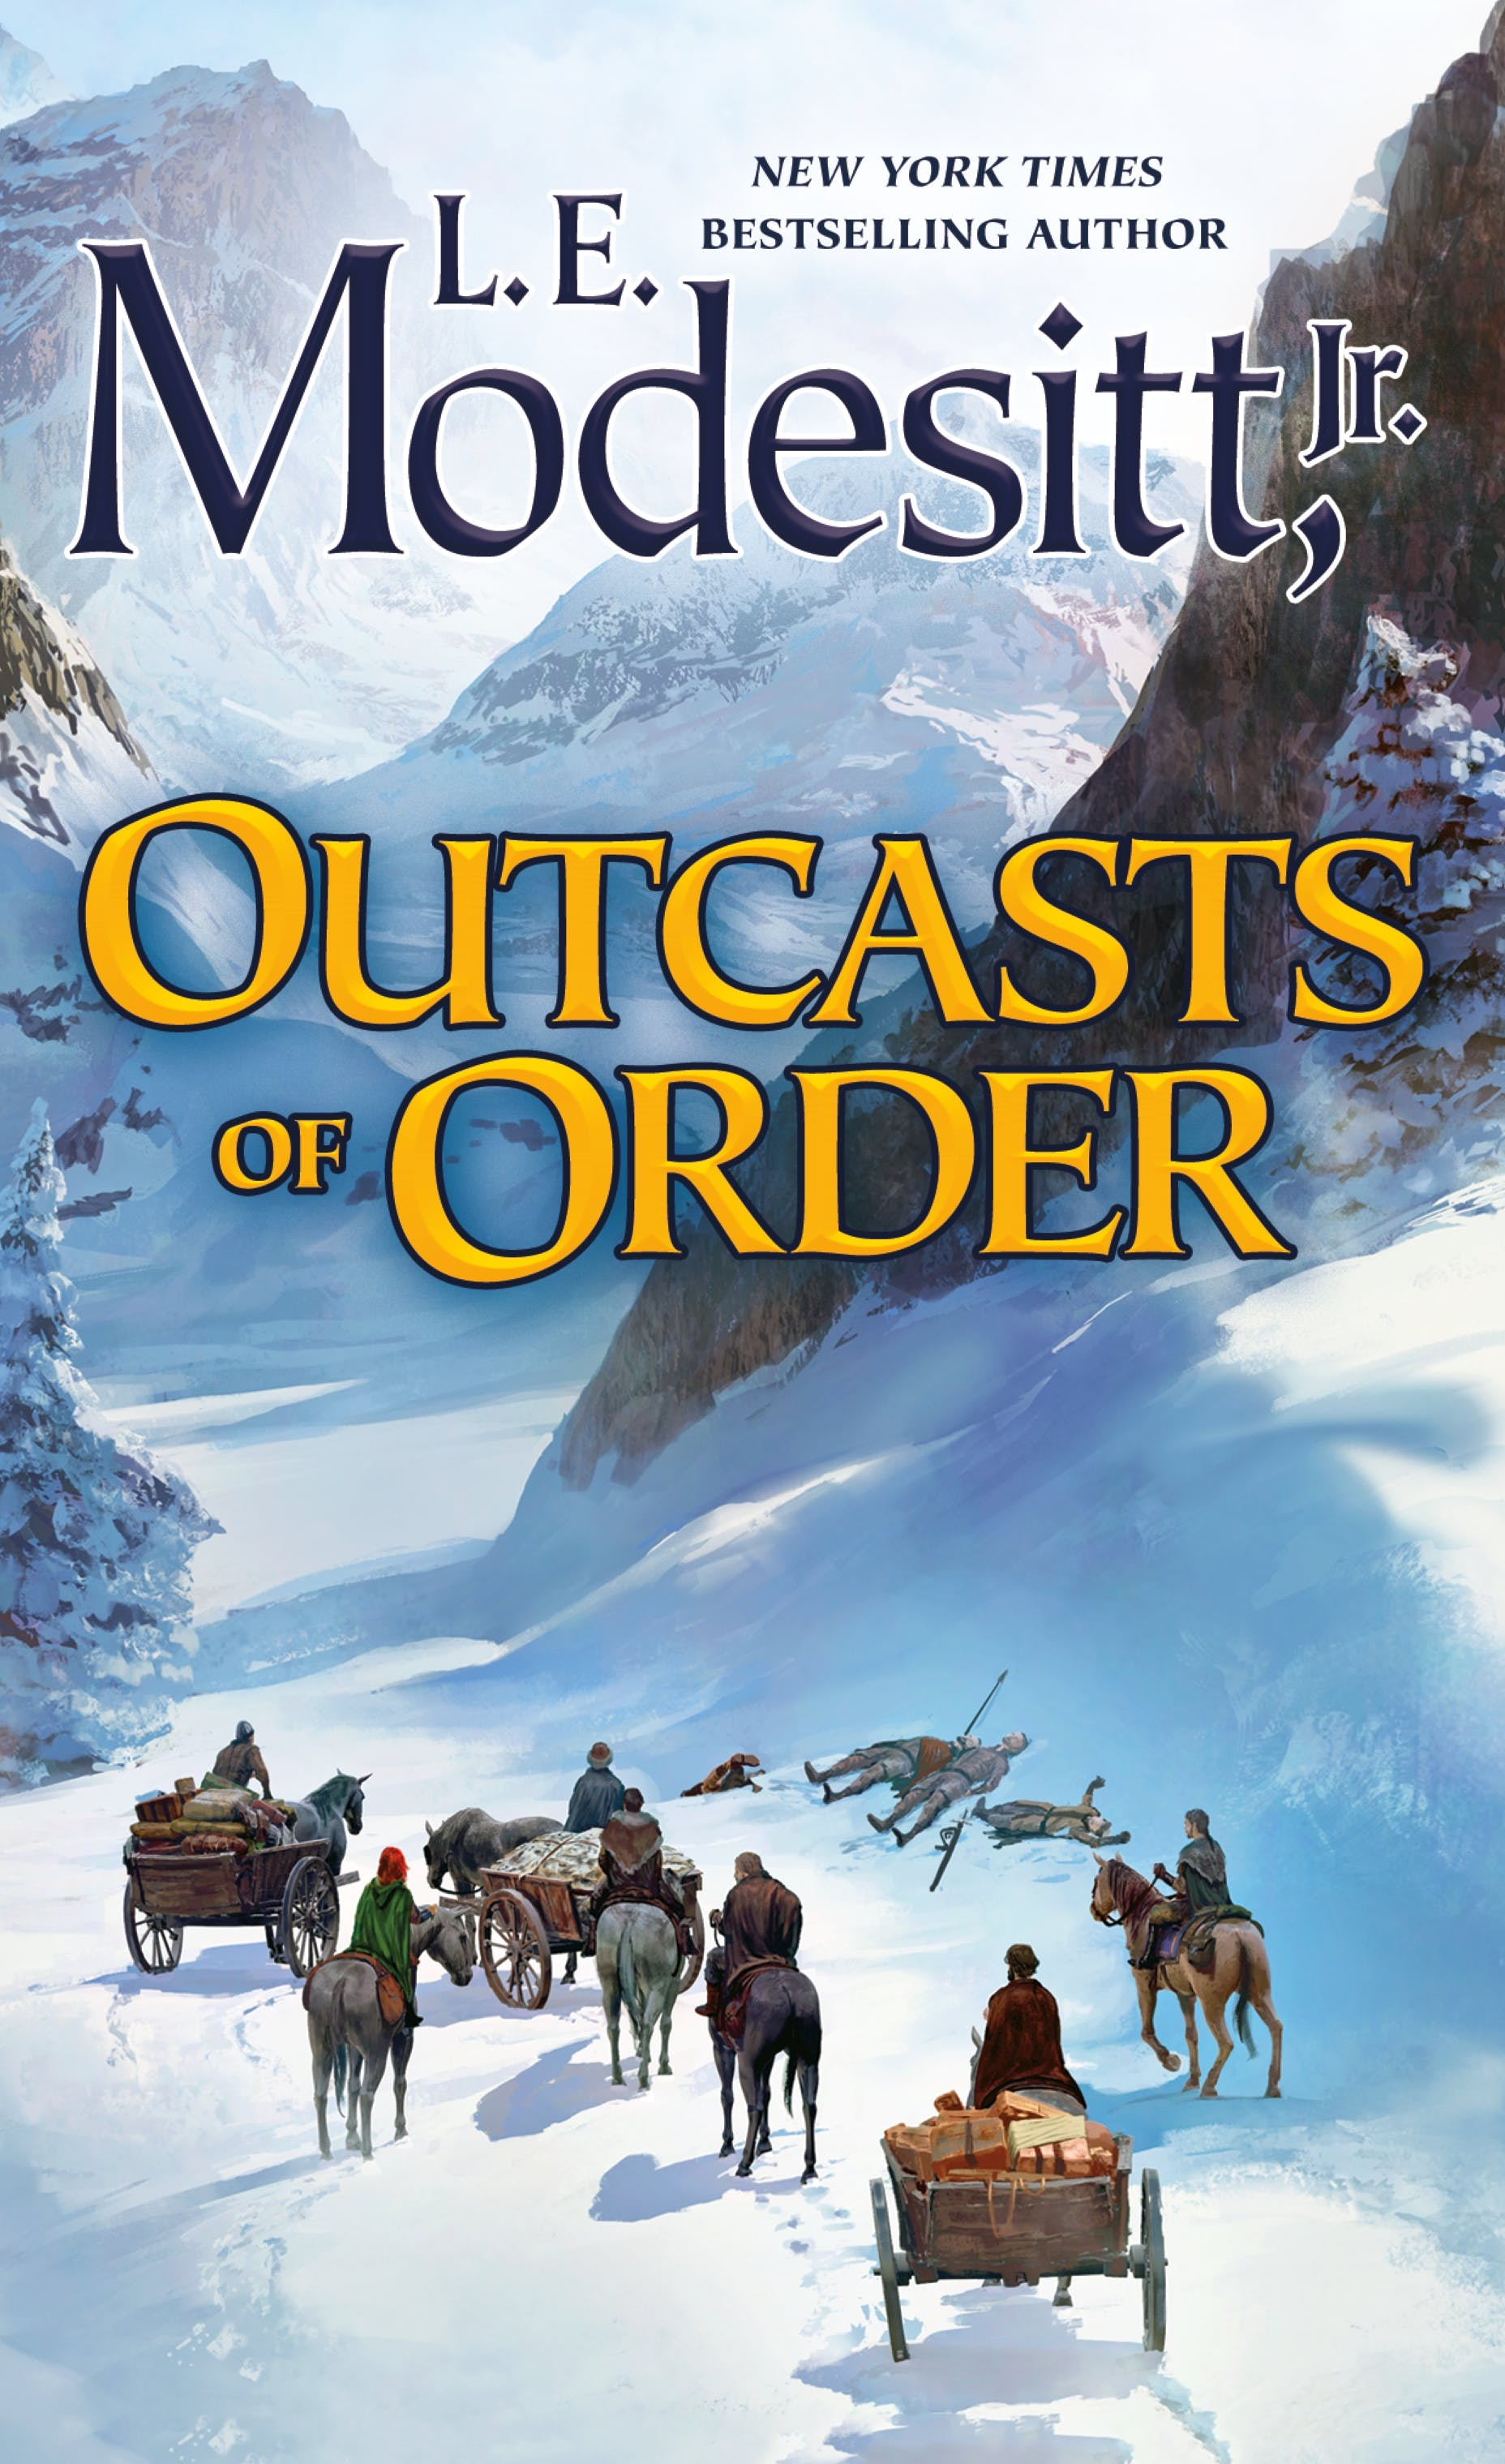 Image of Outcasts of Order